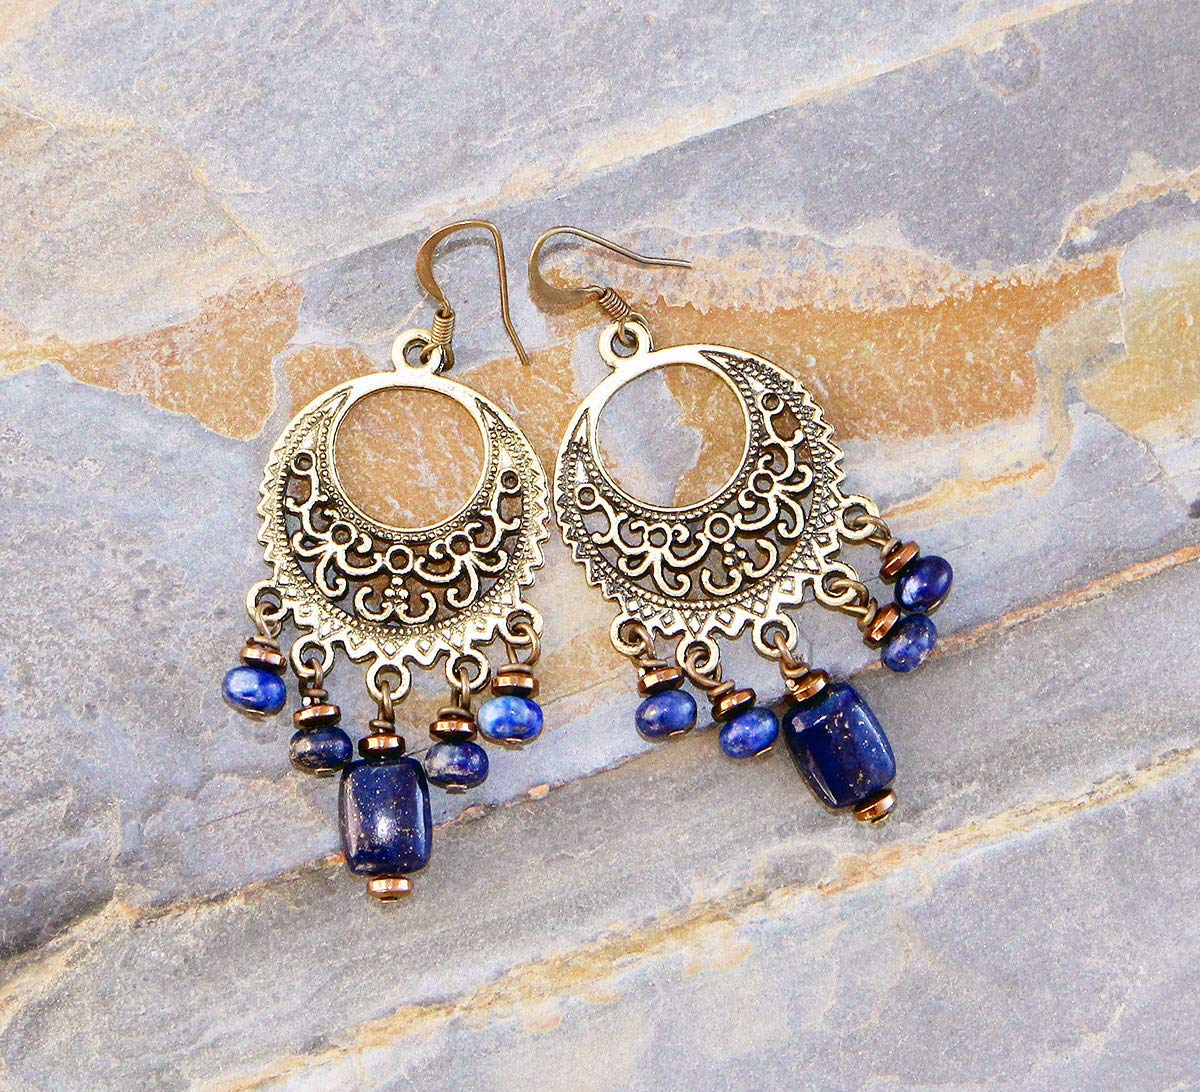 Bohemian Earrings, Lapis Lazuli Earrings, Brass Earrings, Chandelier Earrings, Handmade Earrings, Fall Earring, Gypsy Earrings, Blue Earring